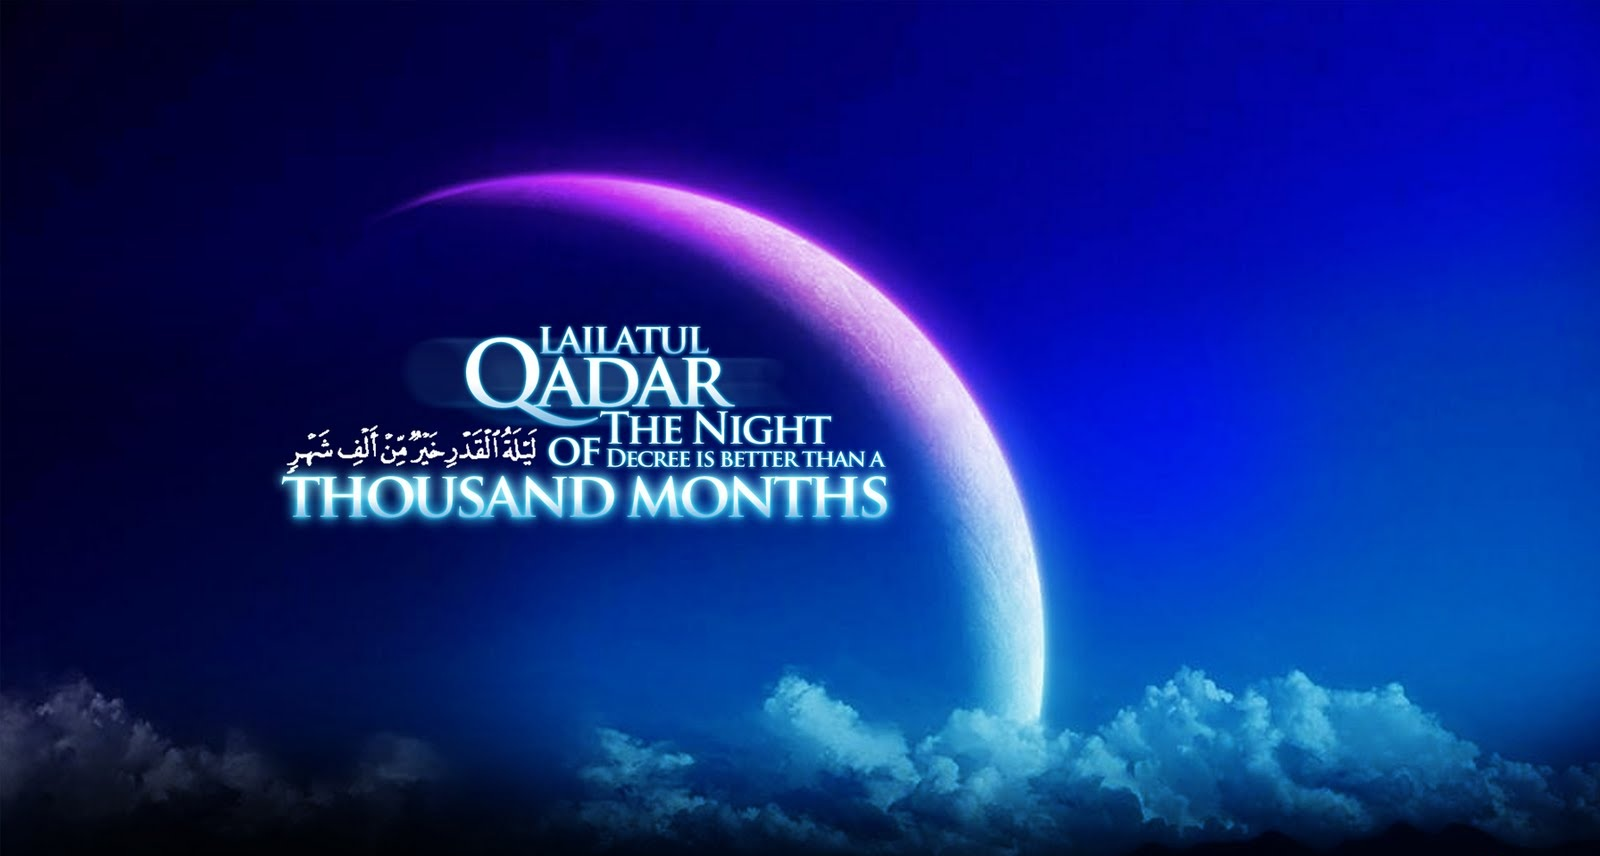 another name of lailatulqadr